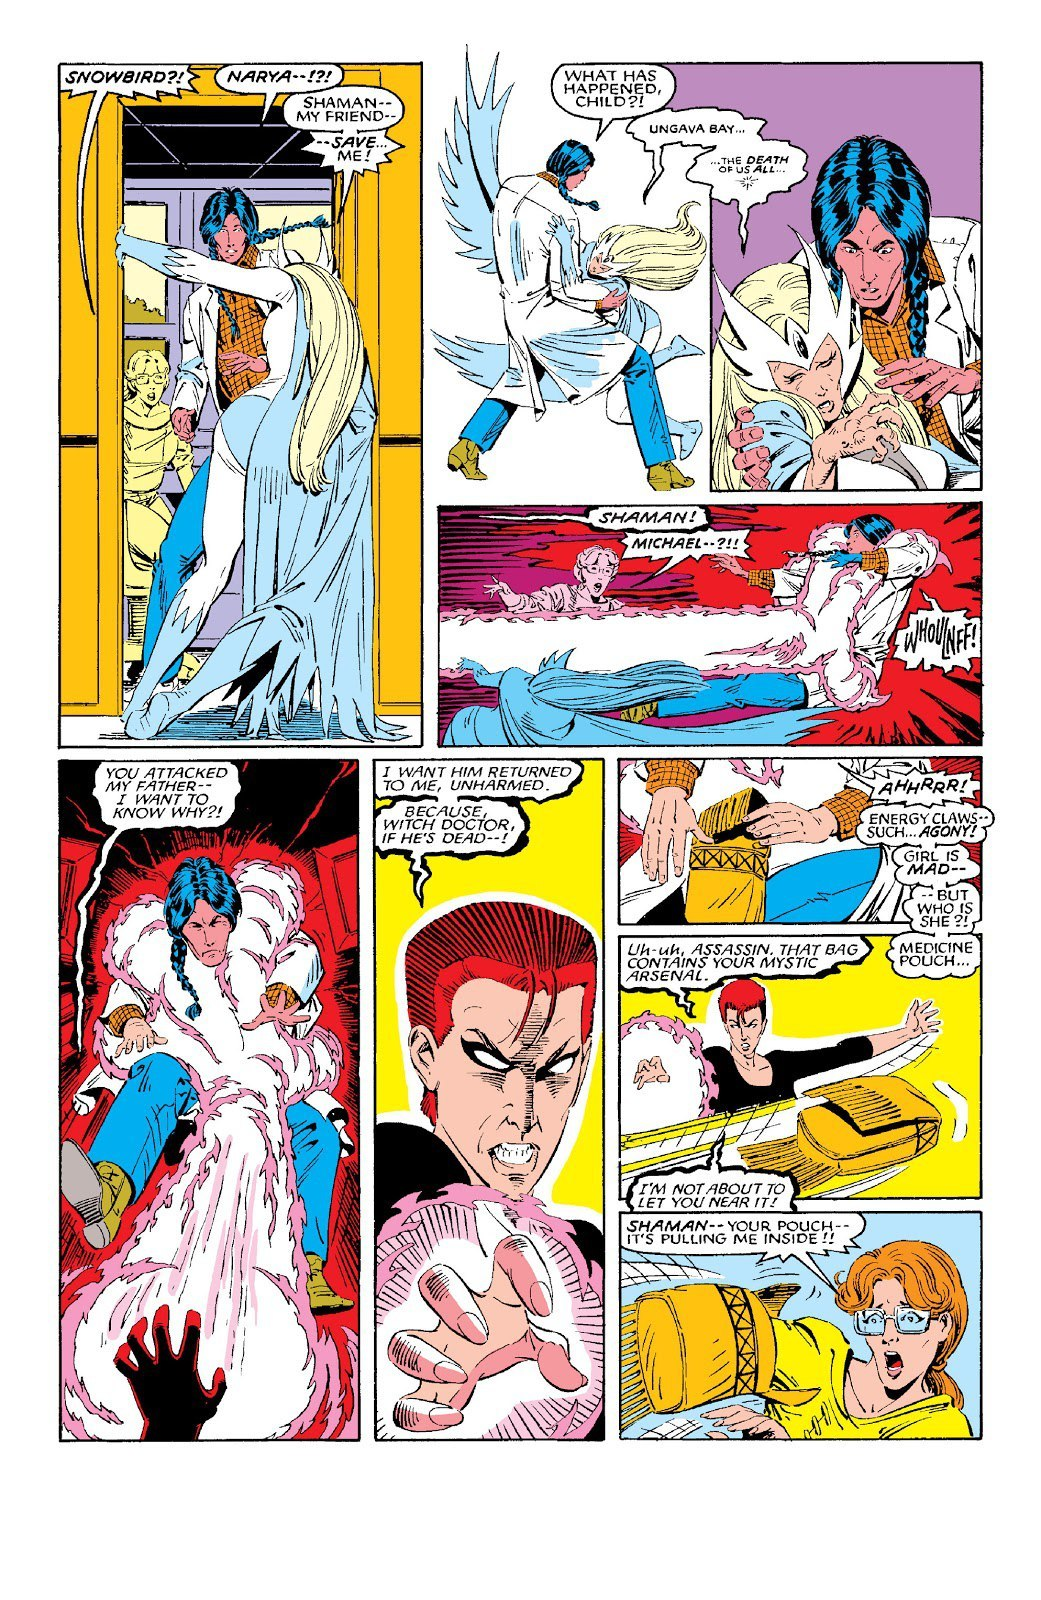 After Snowbird runs in fear of her a rage amped Rachel attacks Alpha Flight, restraining Shaman and turning his medicine pack against them